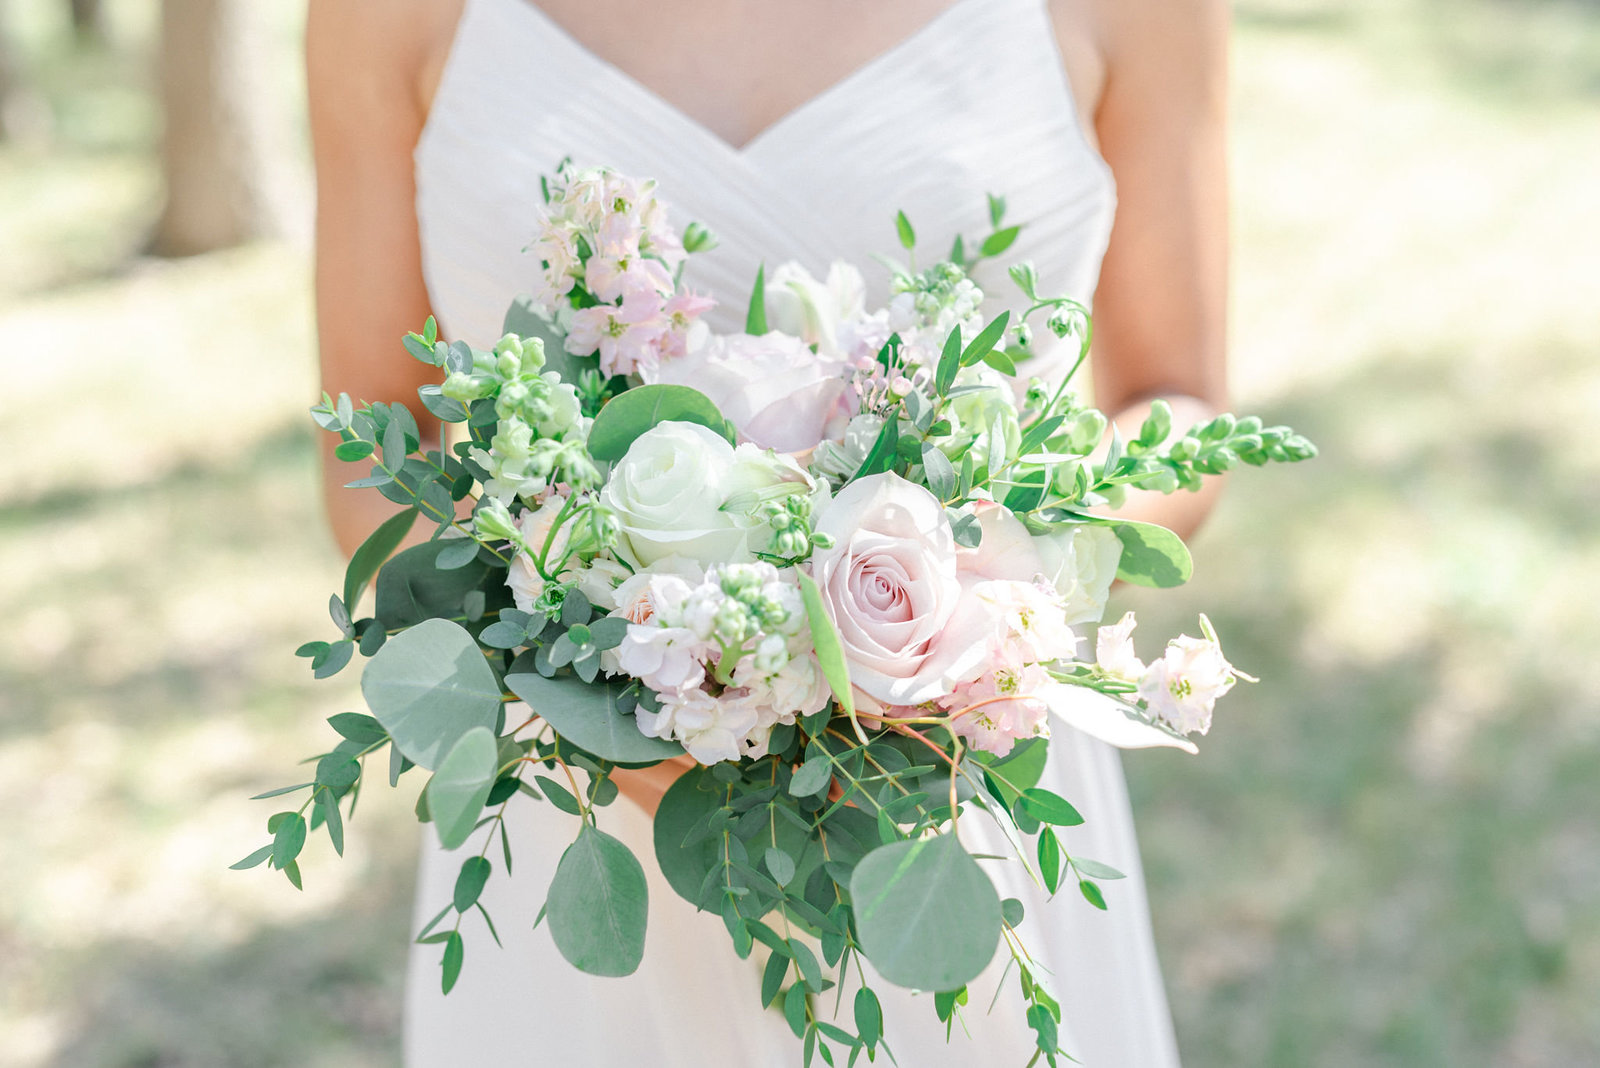 Blush and white unstructured bouquet